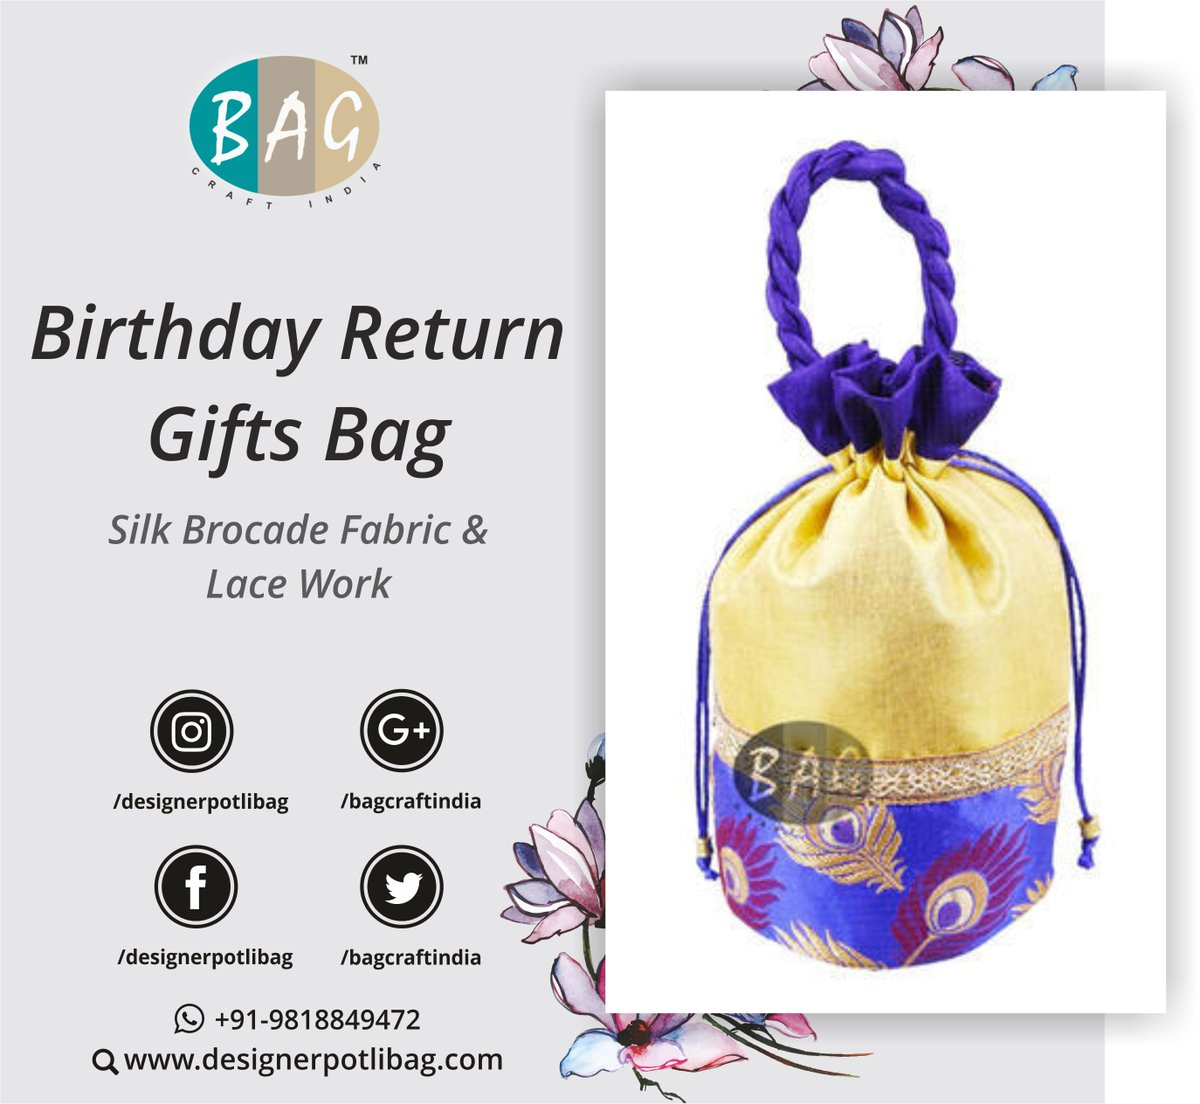 Designerpotlibag Product Birthday Return Gifts Bag Call Or Whatsapp 91 9818849472 PotliBag Giftpictwitter